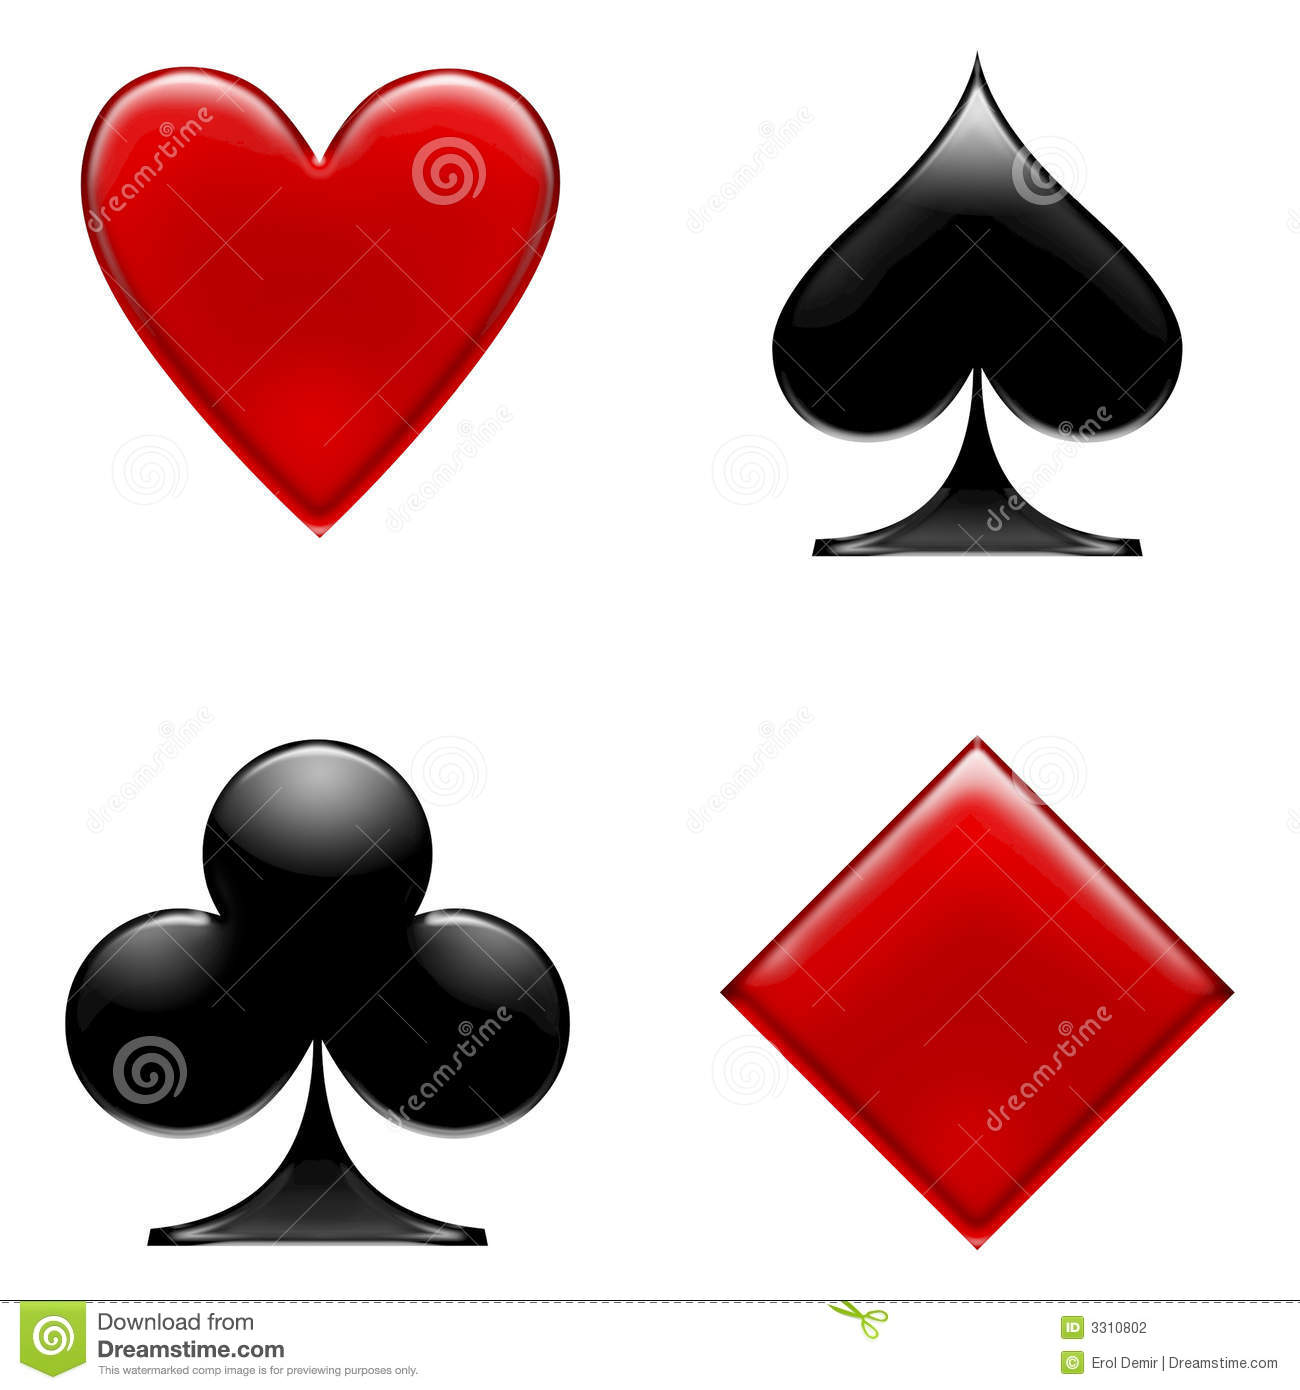 Clubs,hearts,diamonds and spades.